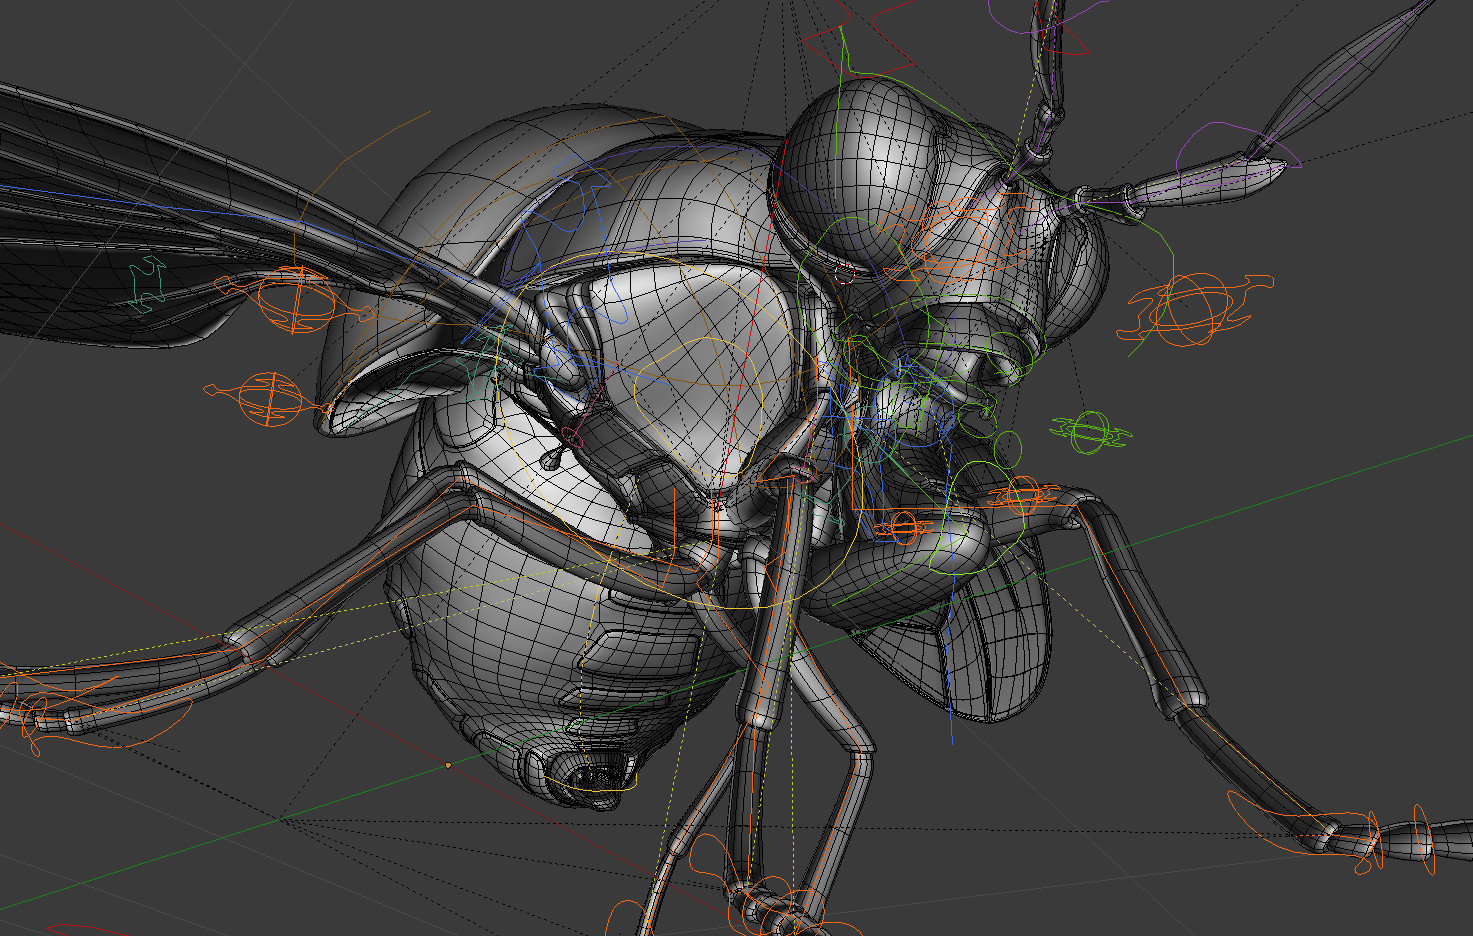 images/graphisme-3d/insectes/celyphidae